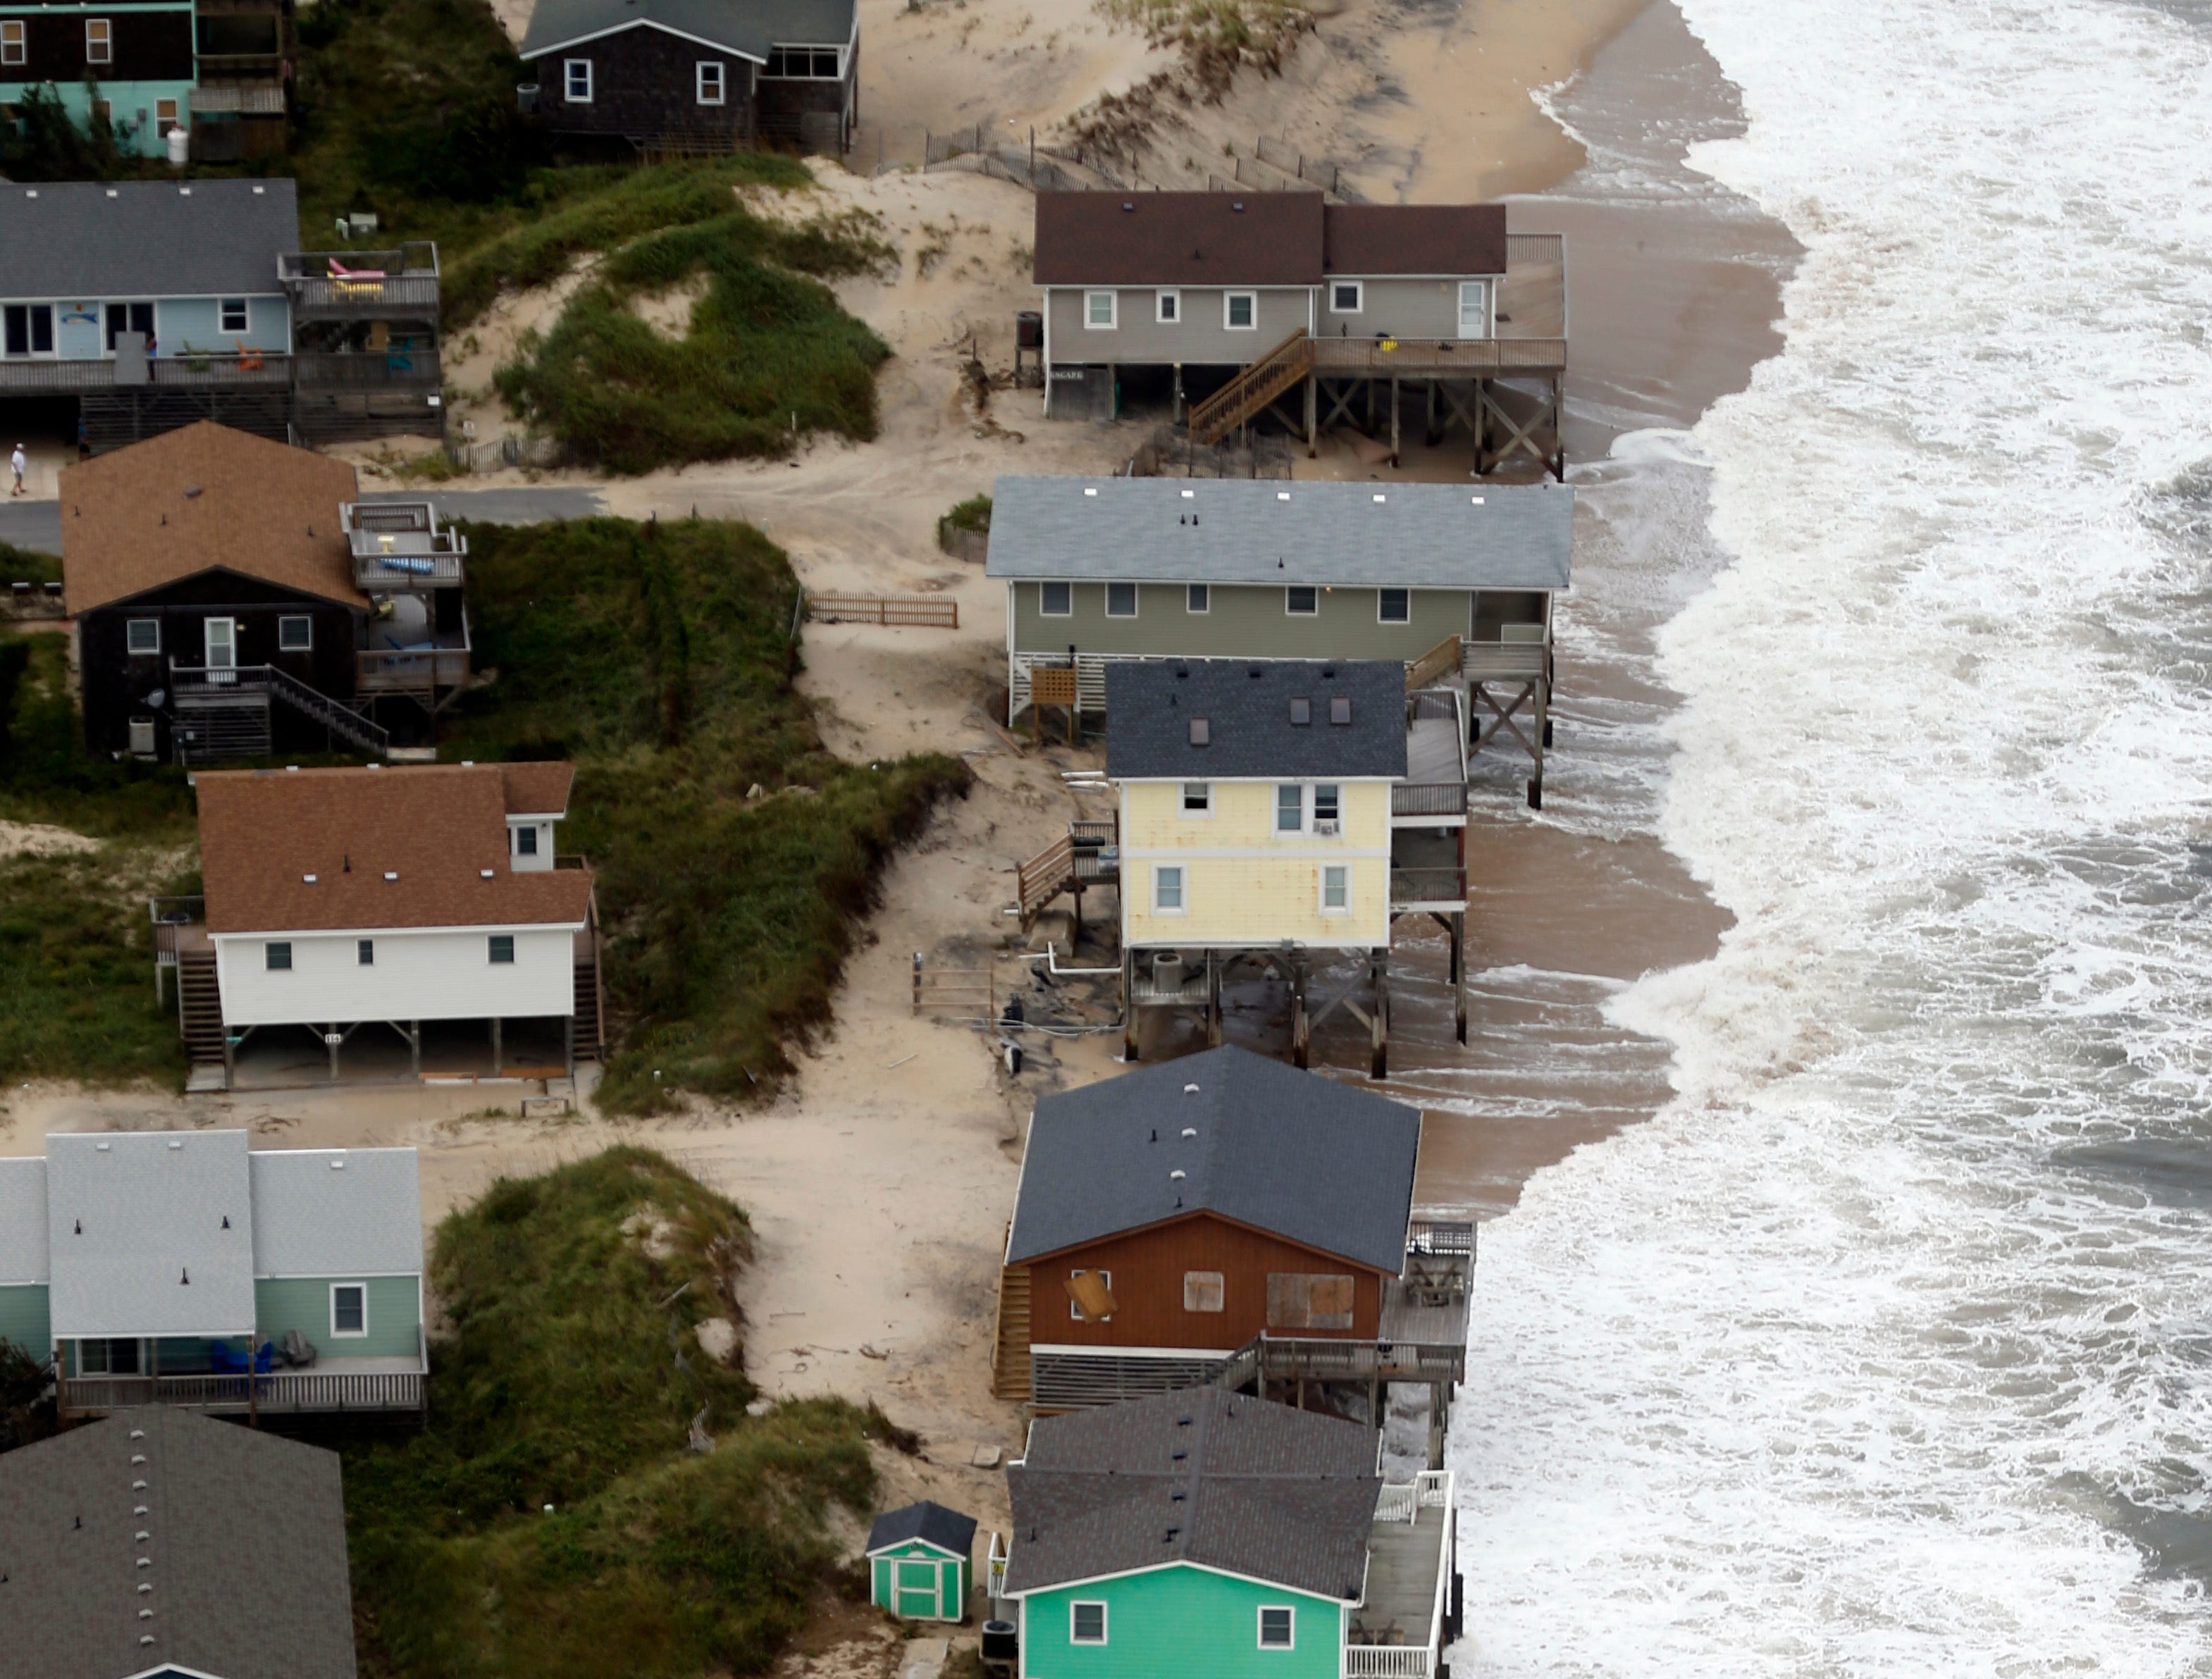 Oceanfront homes sit over rough surf from tropical storm Florence in Nags Head NC., Saturday, Sept. 15, 2018.